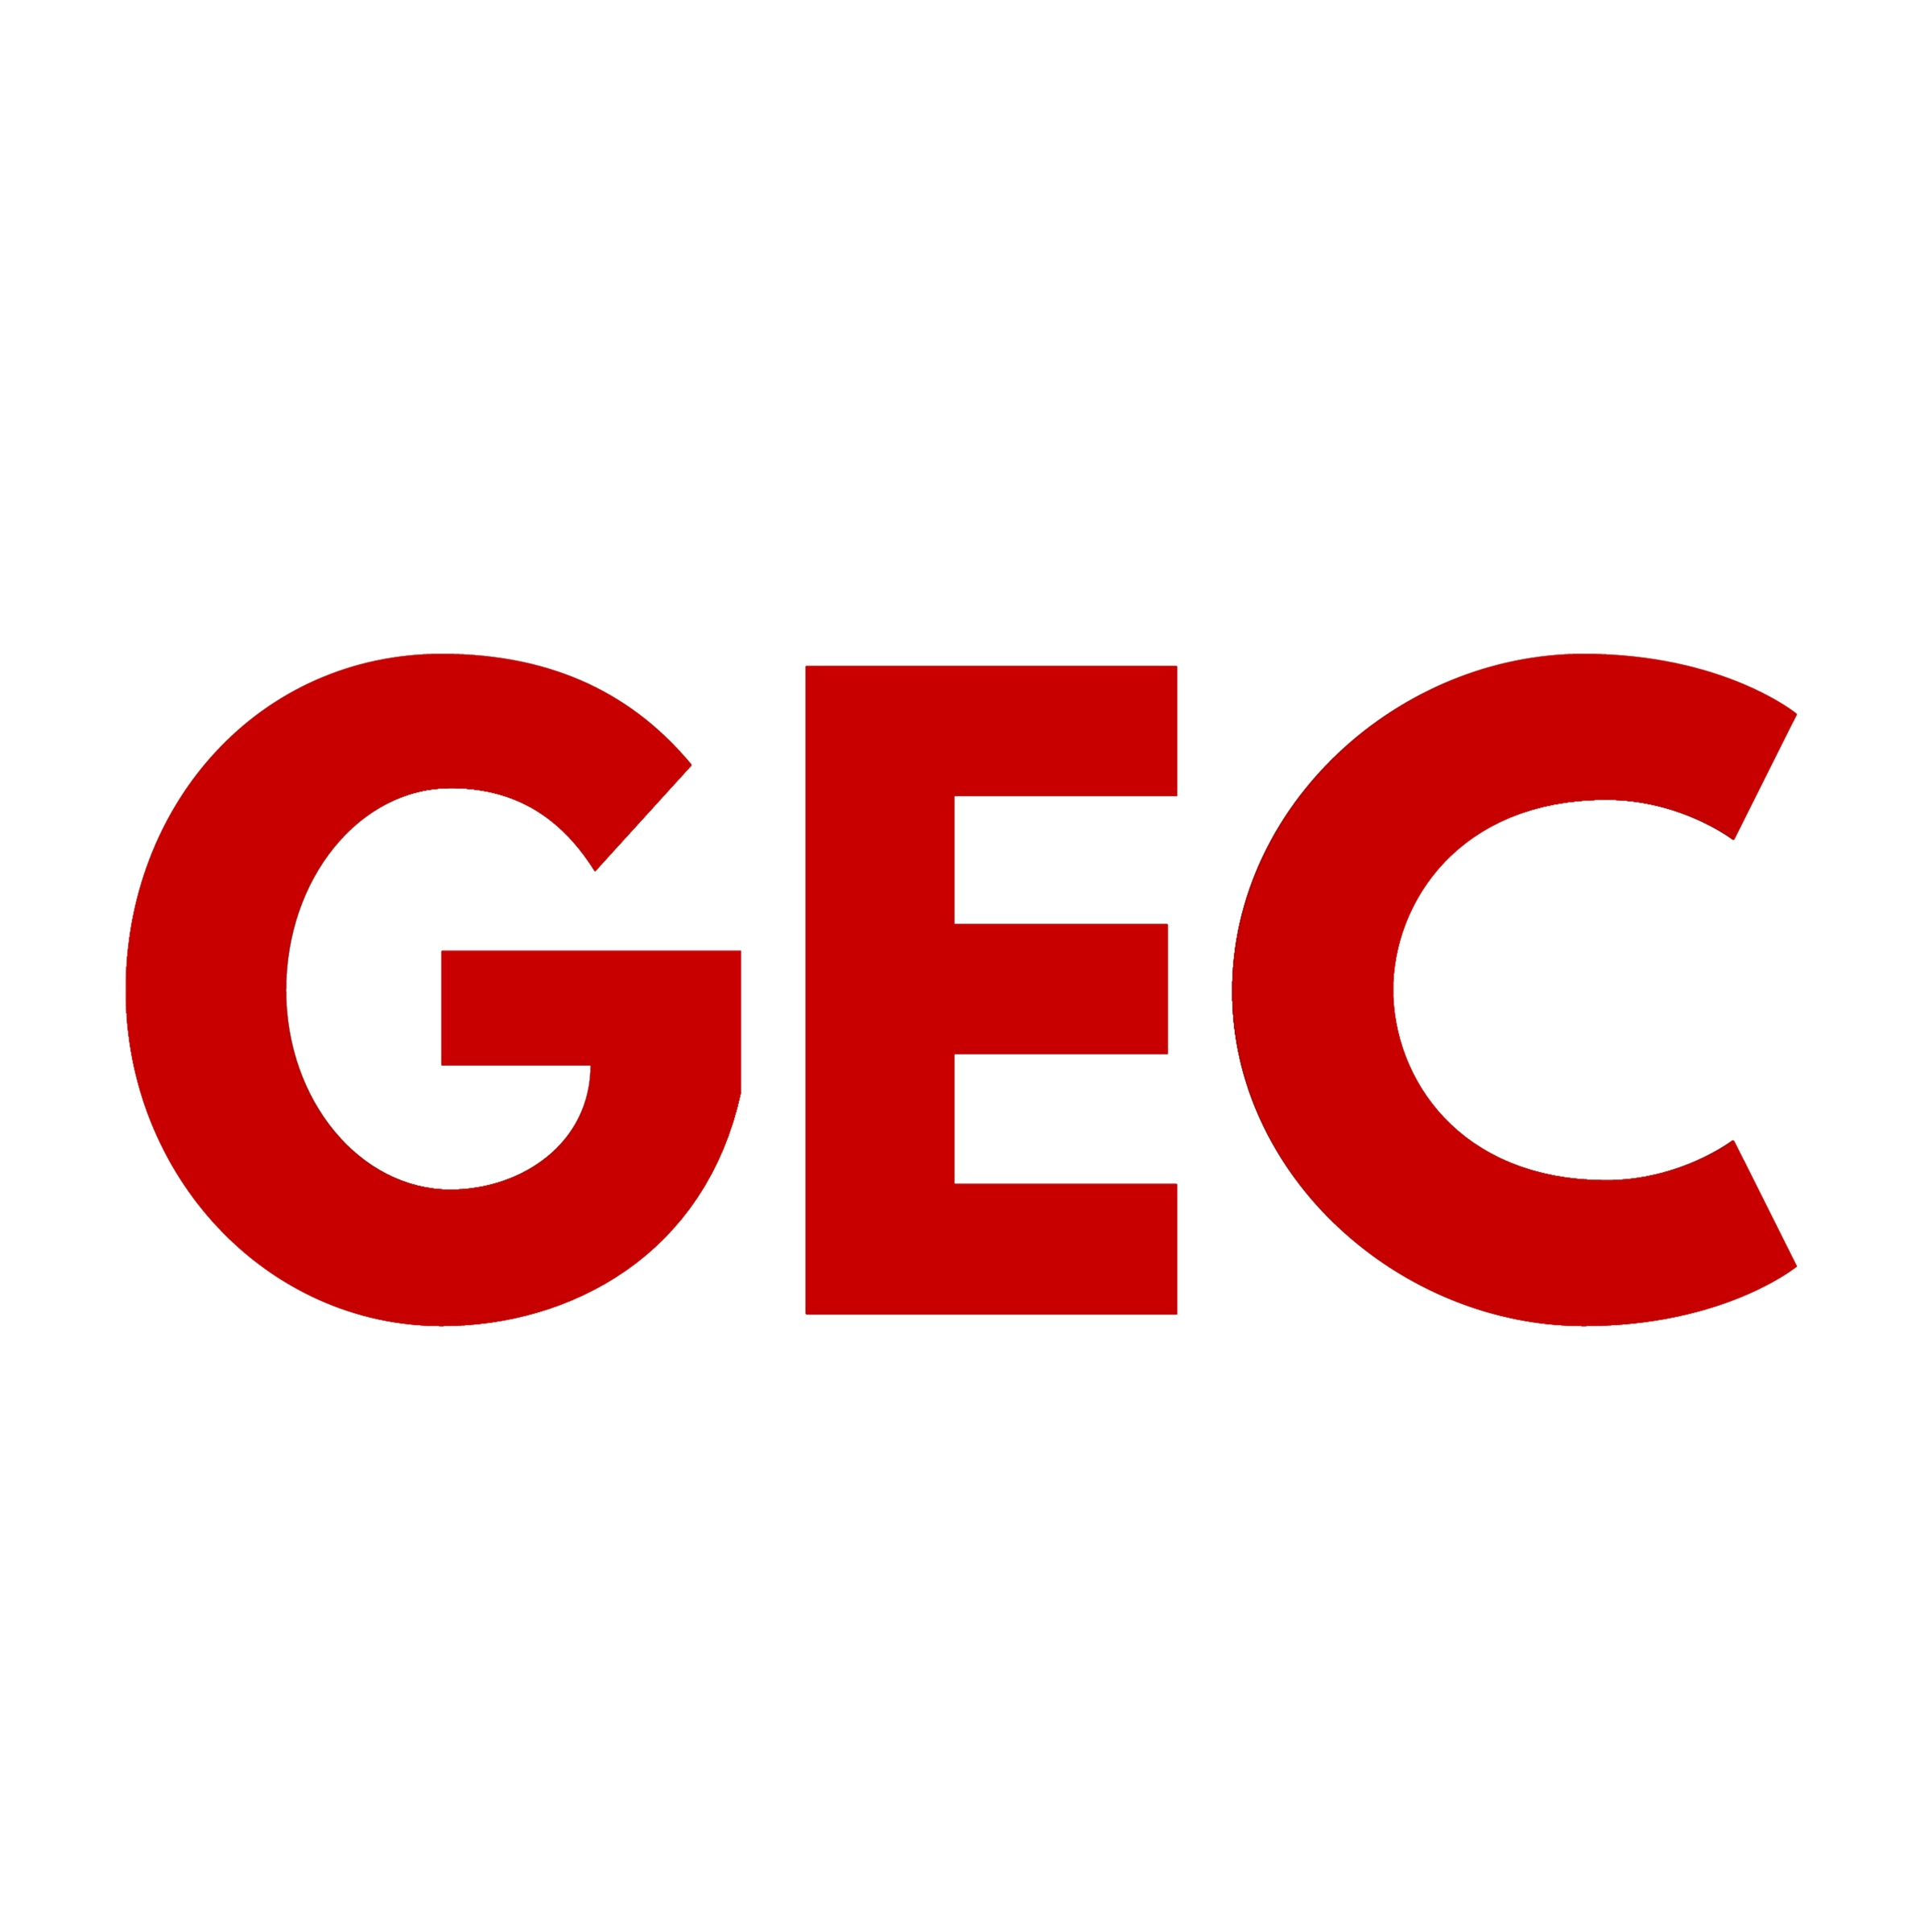 GEC – GLOBAL ENGAGEMENTS CONSULTING